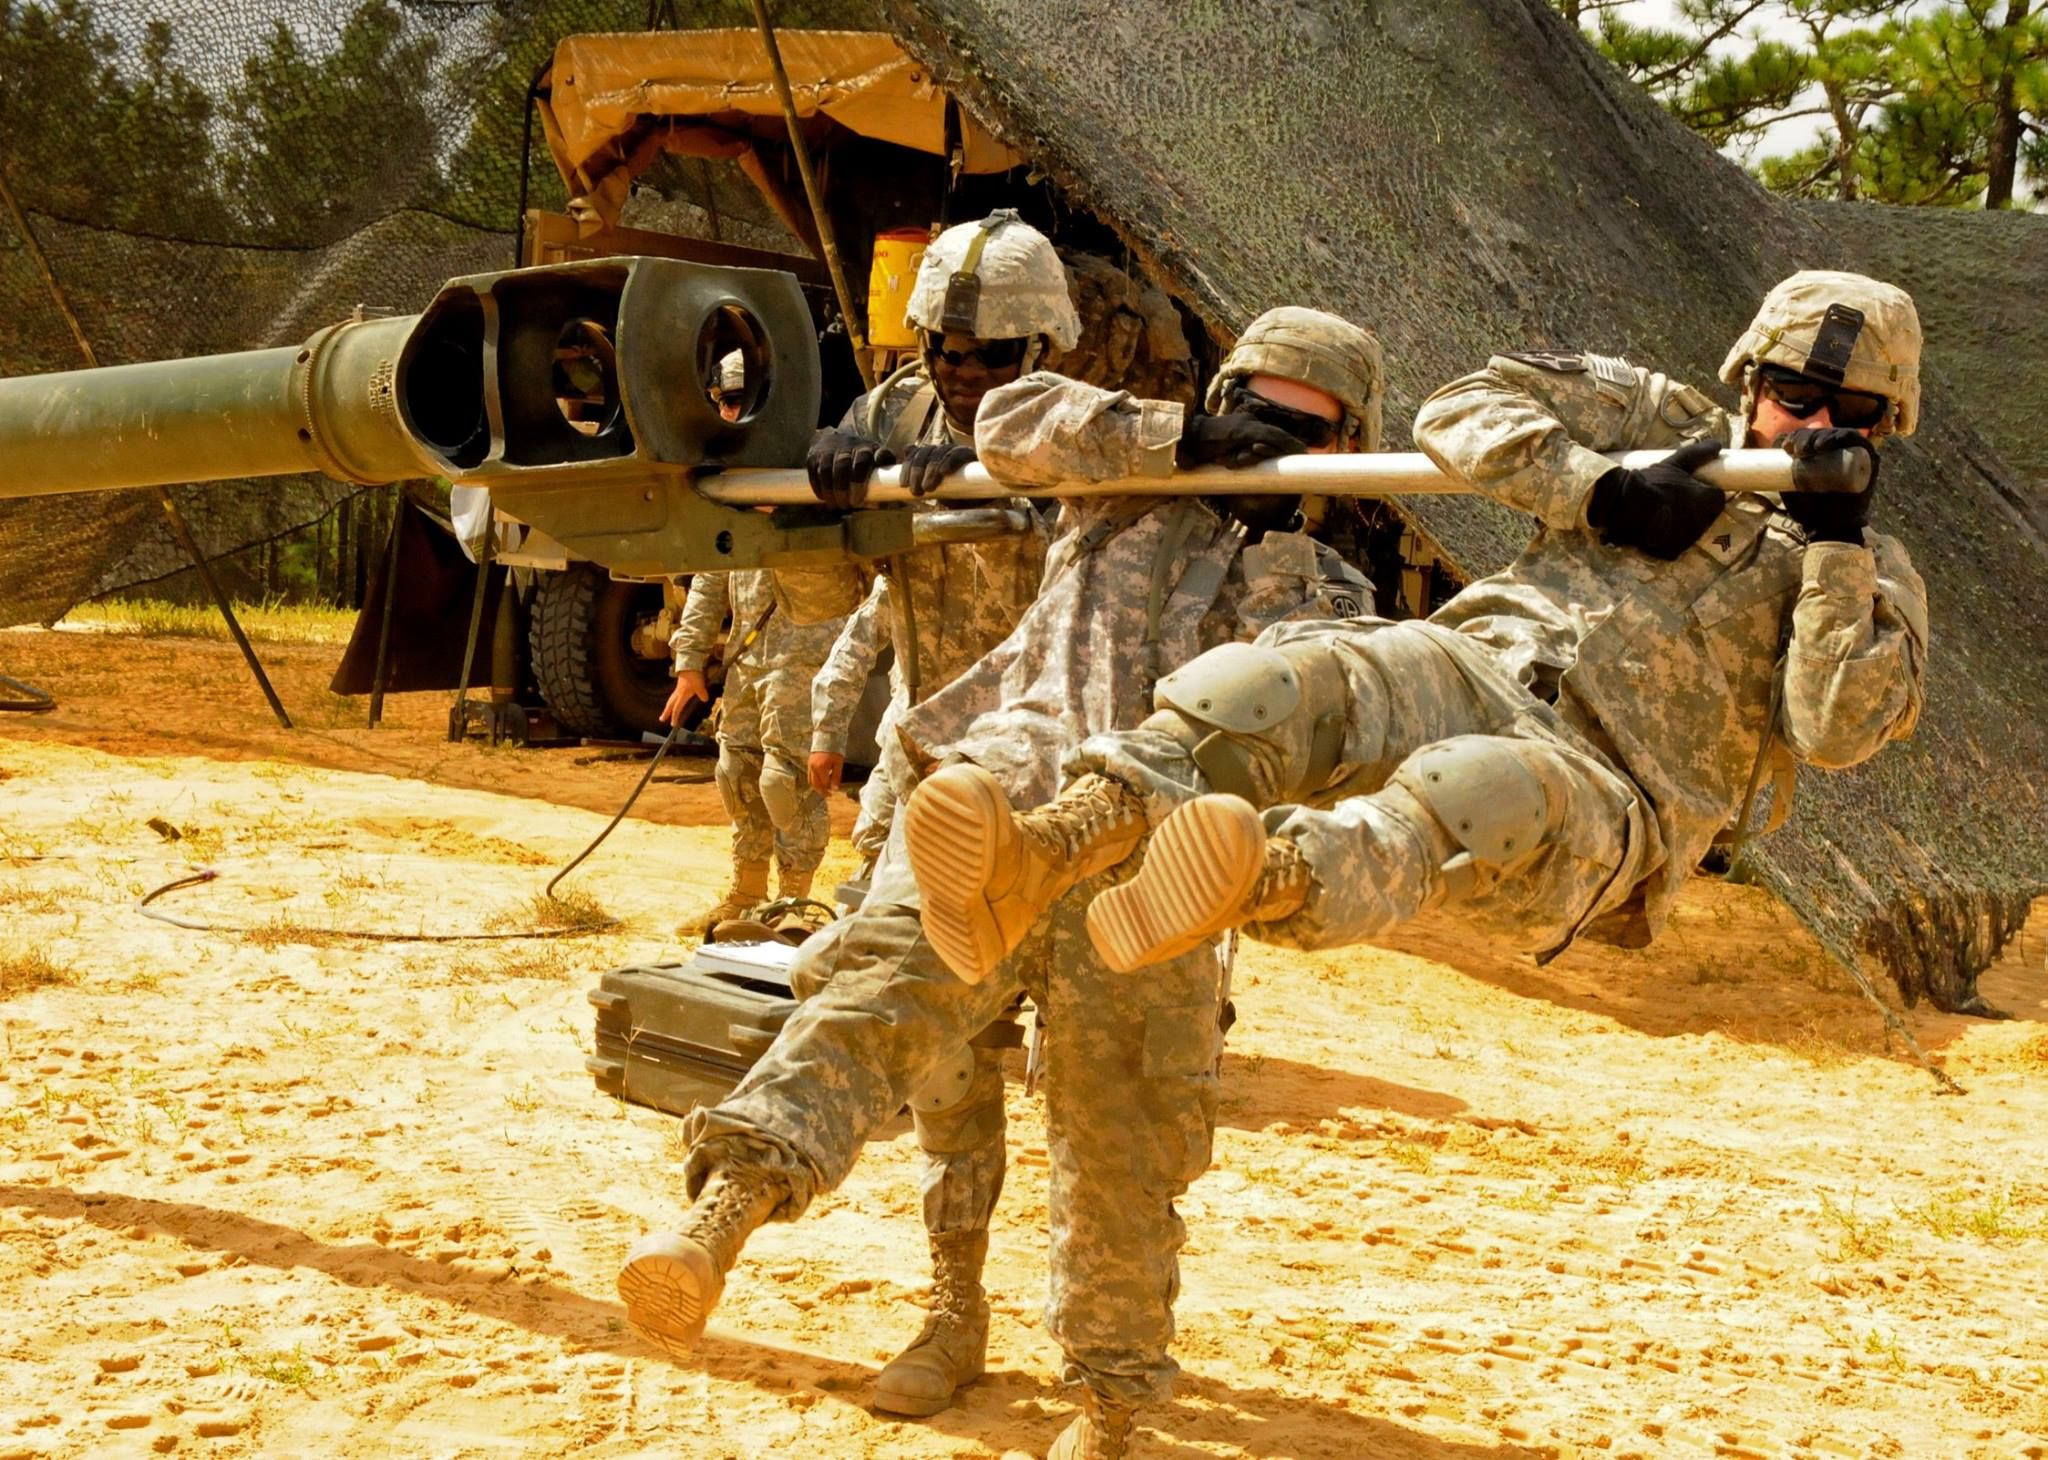 #82Ndairbornedivisionartillery An M777A2 Howitzer Crew, Assigned To 2Nd Battalion